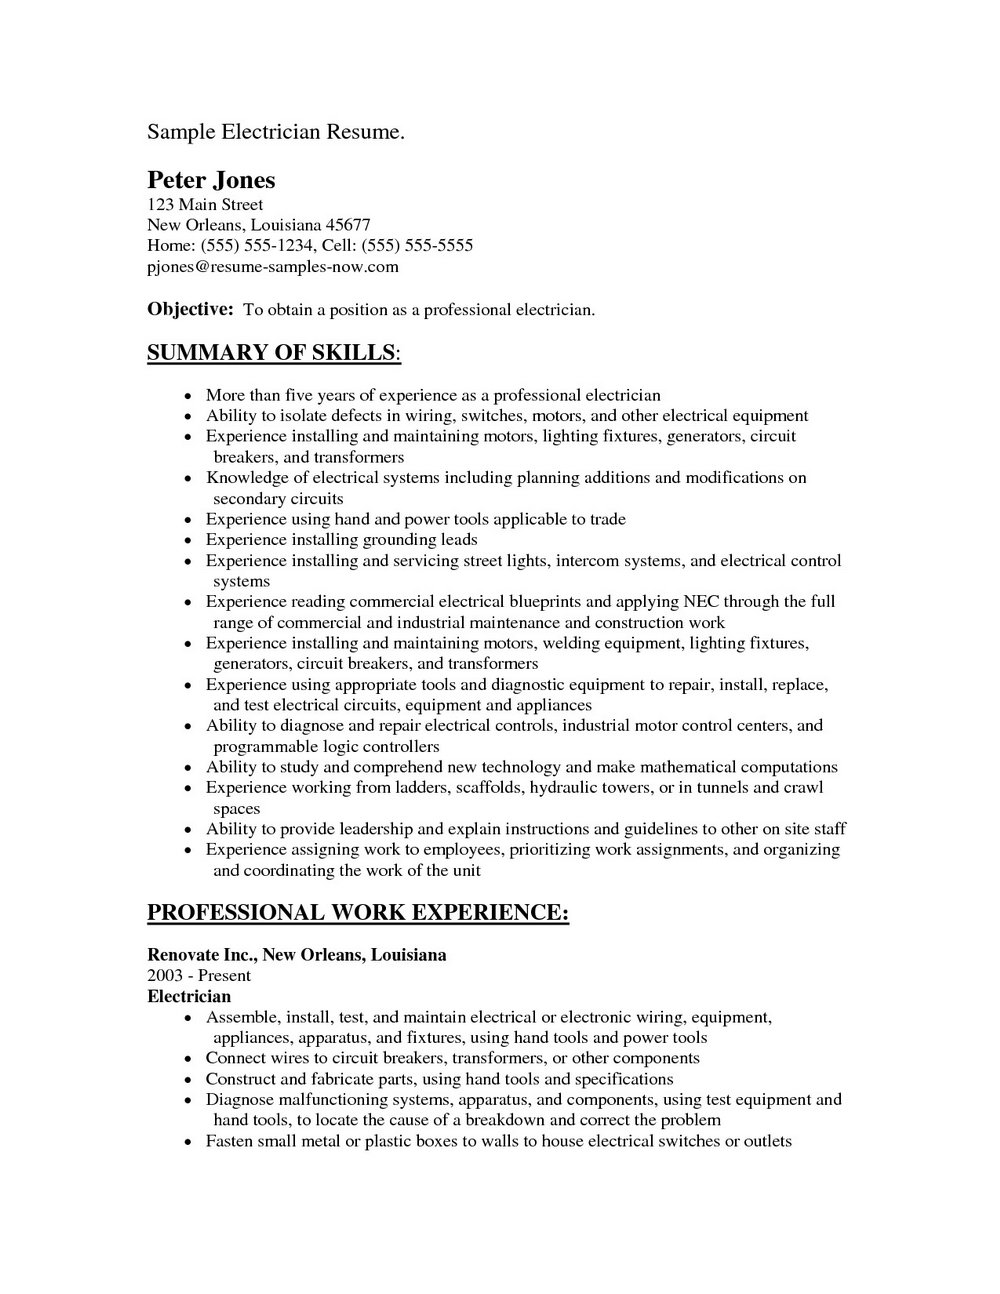 Resume Templates For Electricians Apprentice